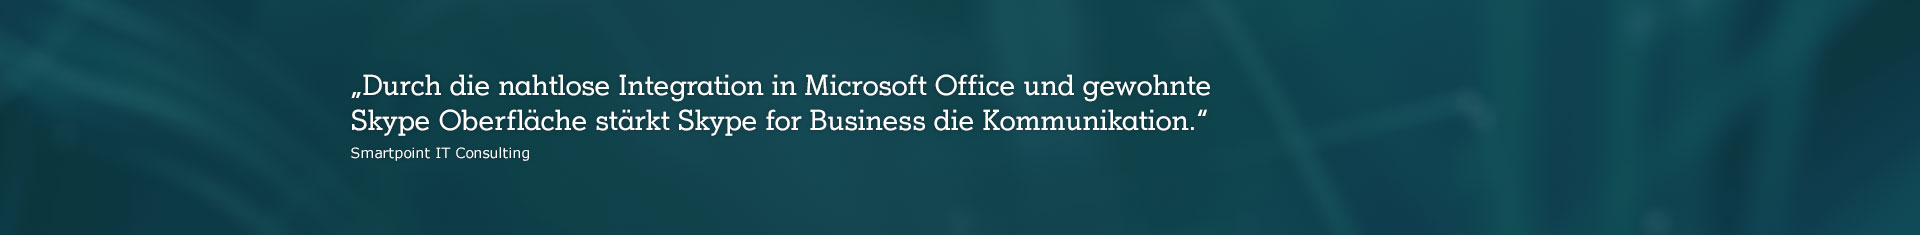 Smartpoint IT Consulting GmbH